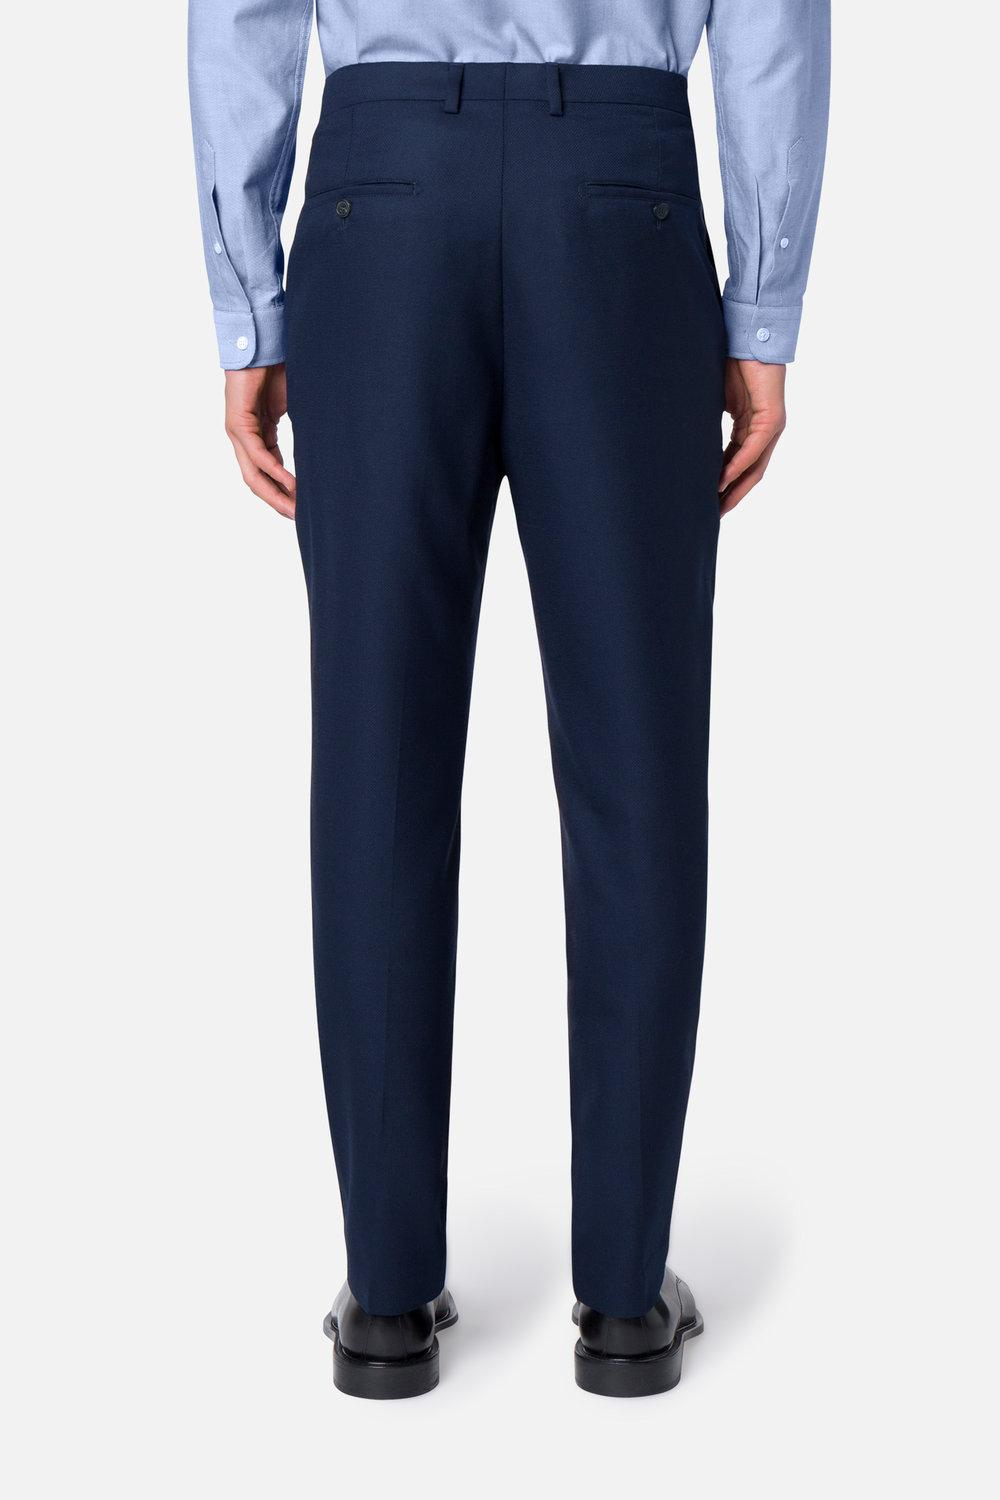 ami carrot-fit trousers in blue for men